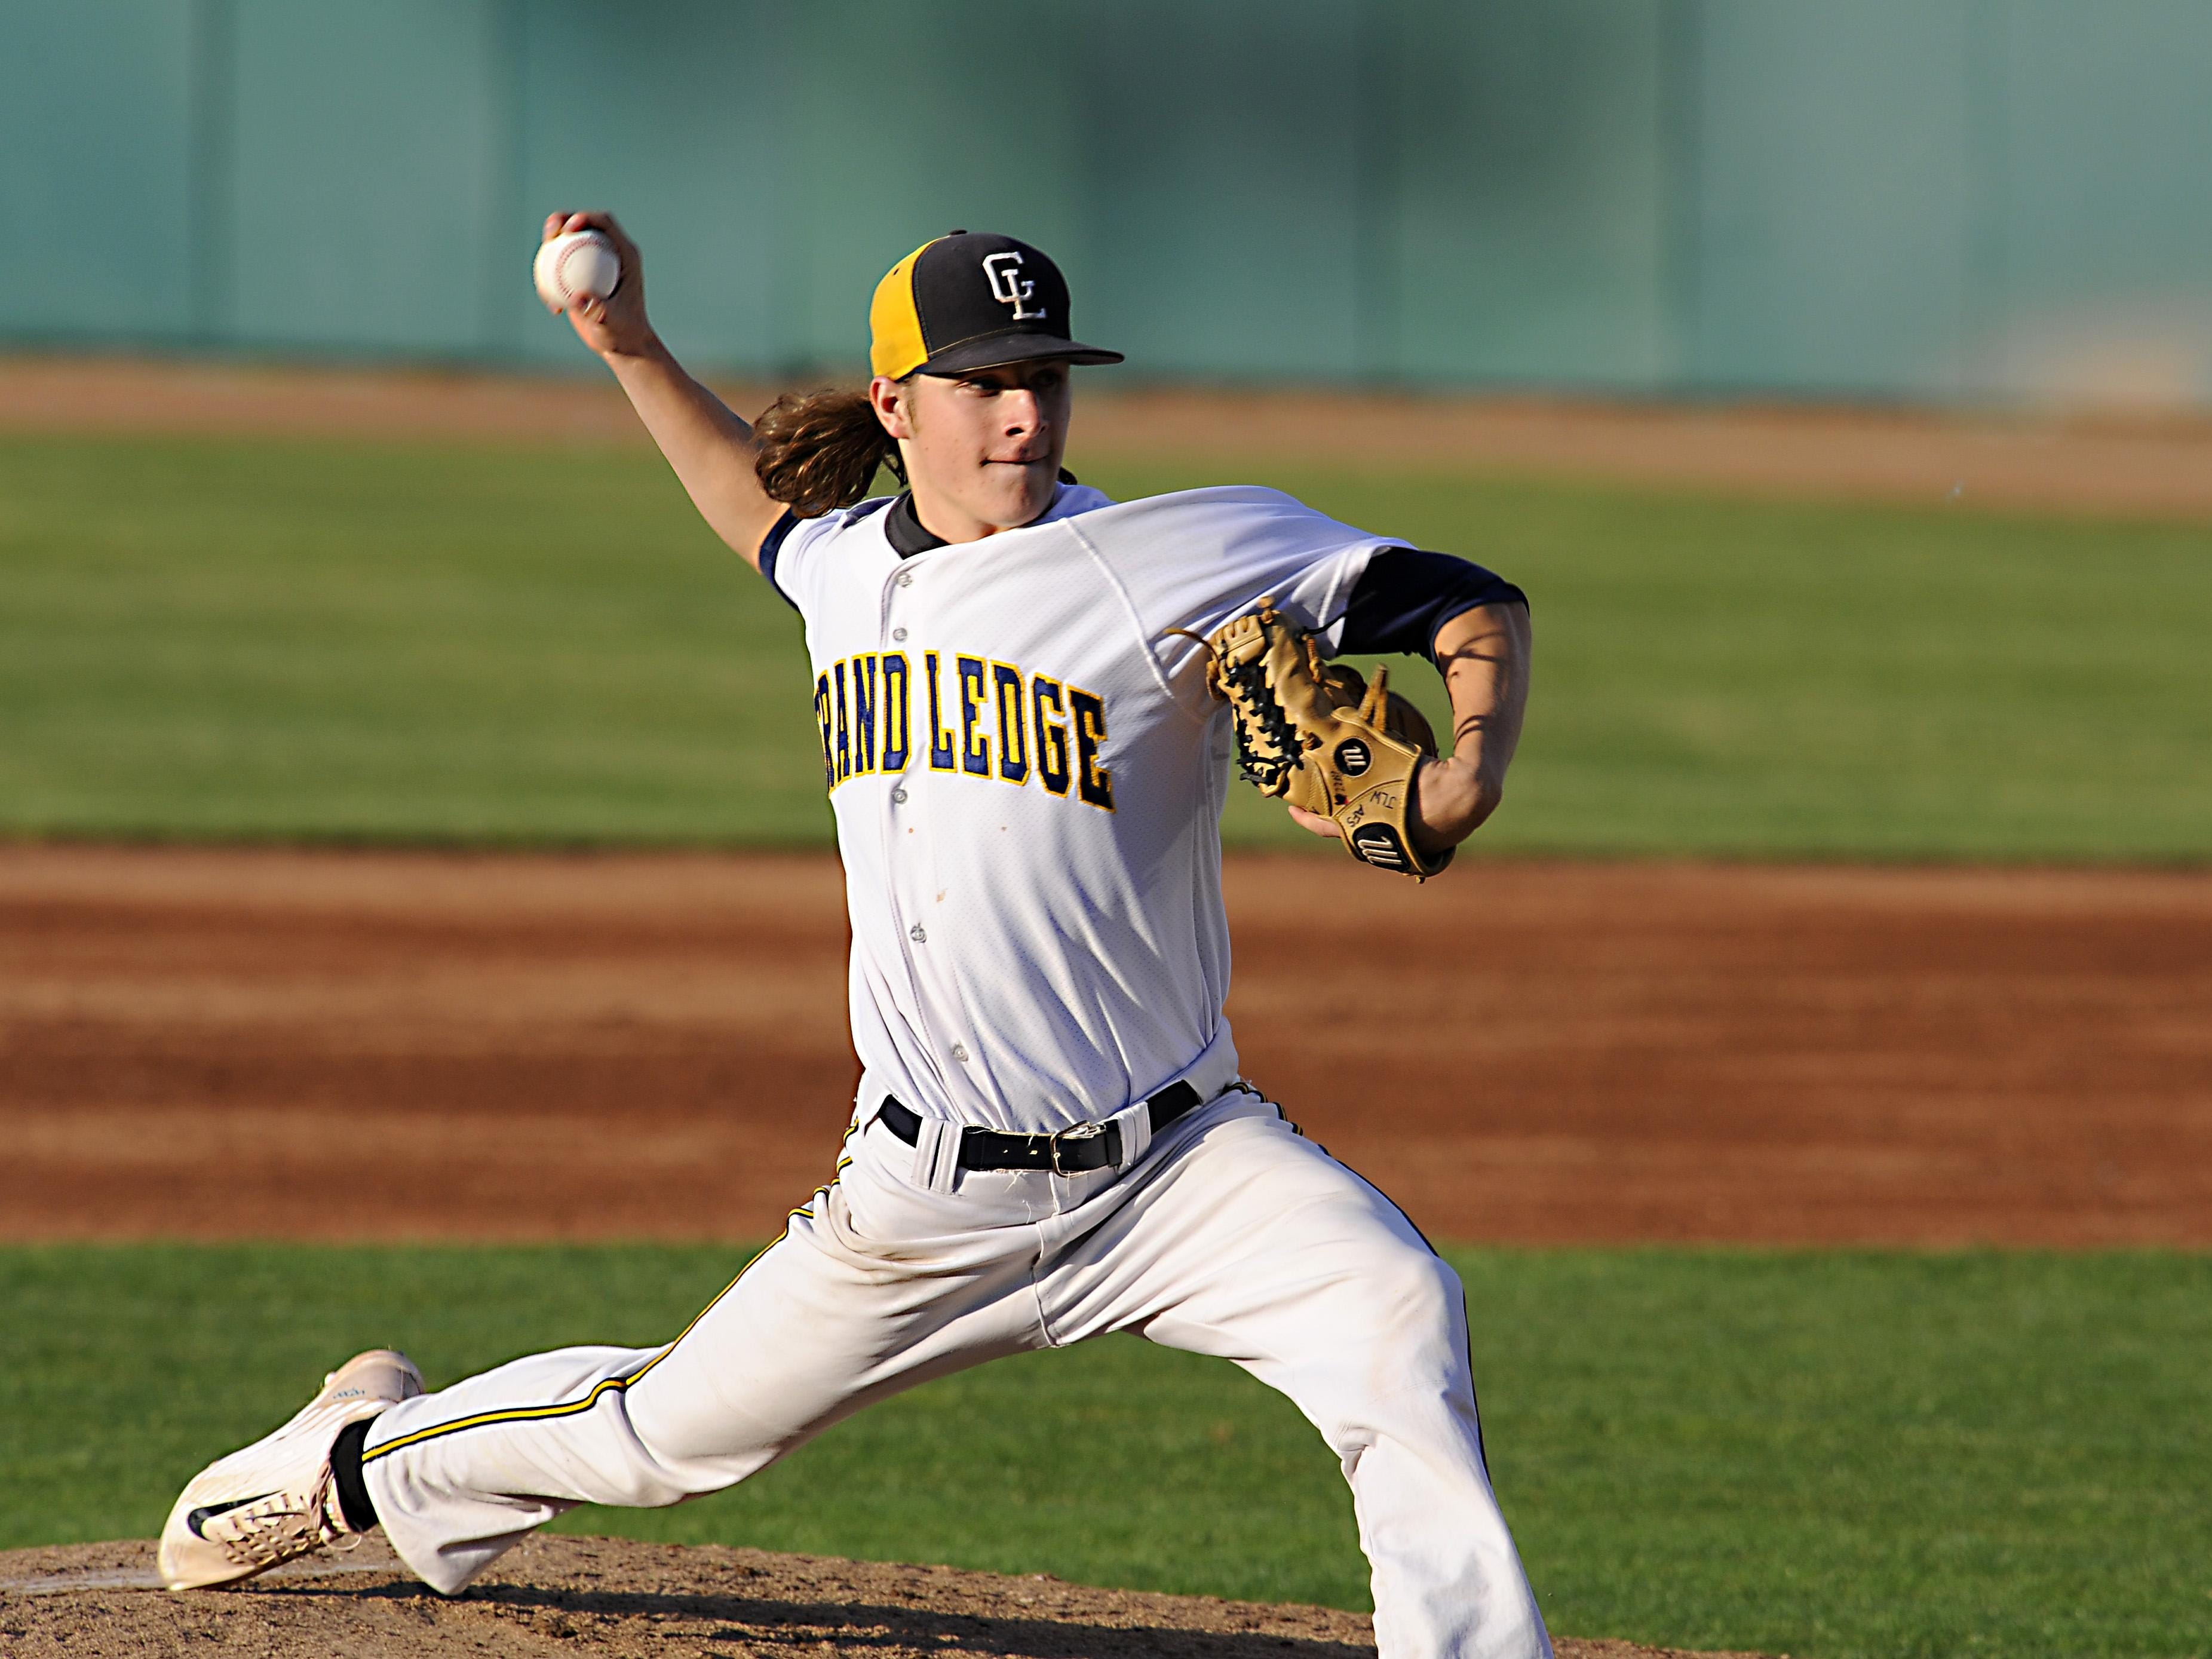 Tyler Waldrop was 10-1 with 118 strikeouts and a 0.50 ERA this spring for Grand Ledge.